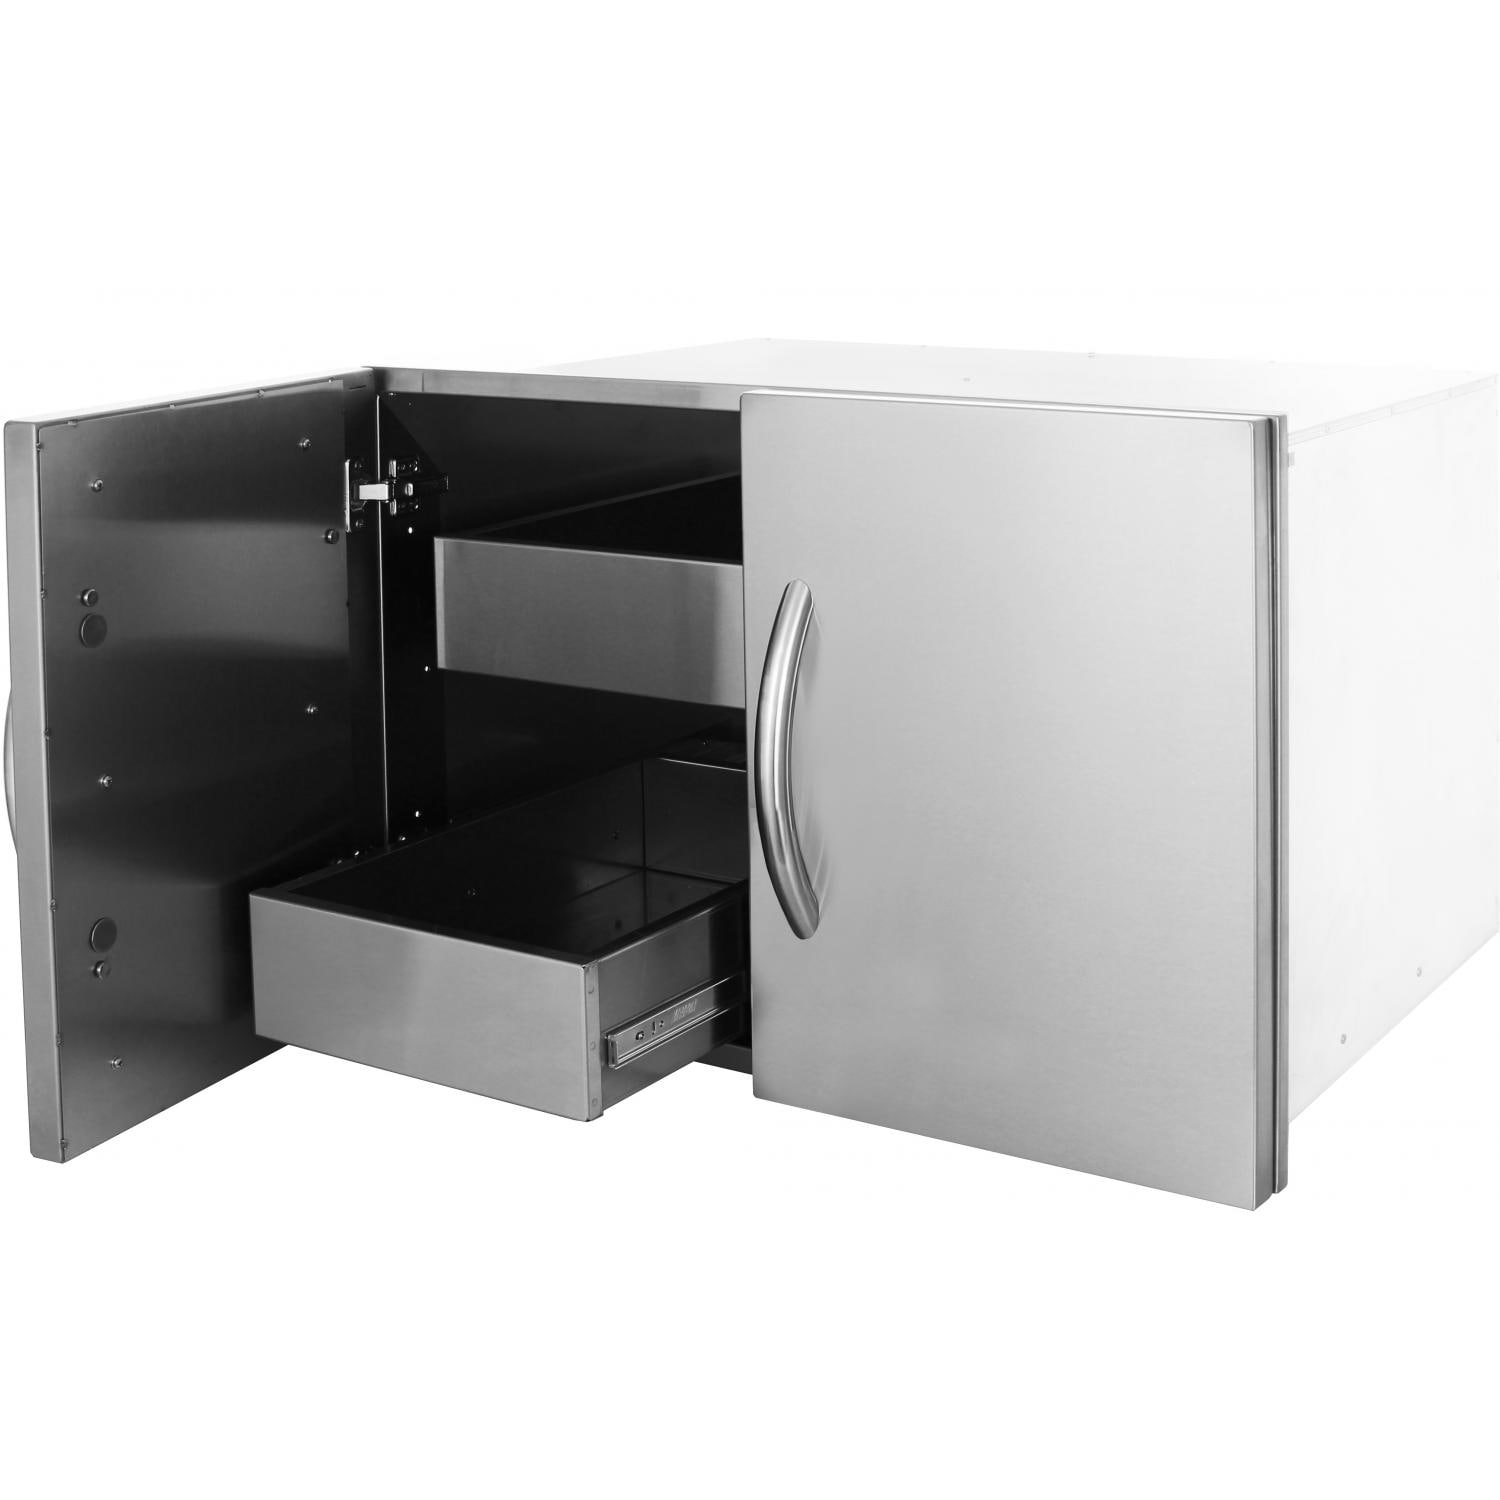 Cabinet With Drawers Cal Flame 30 Inch Enclosed Cabinet With Drawers And Roll Out